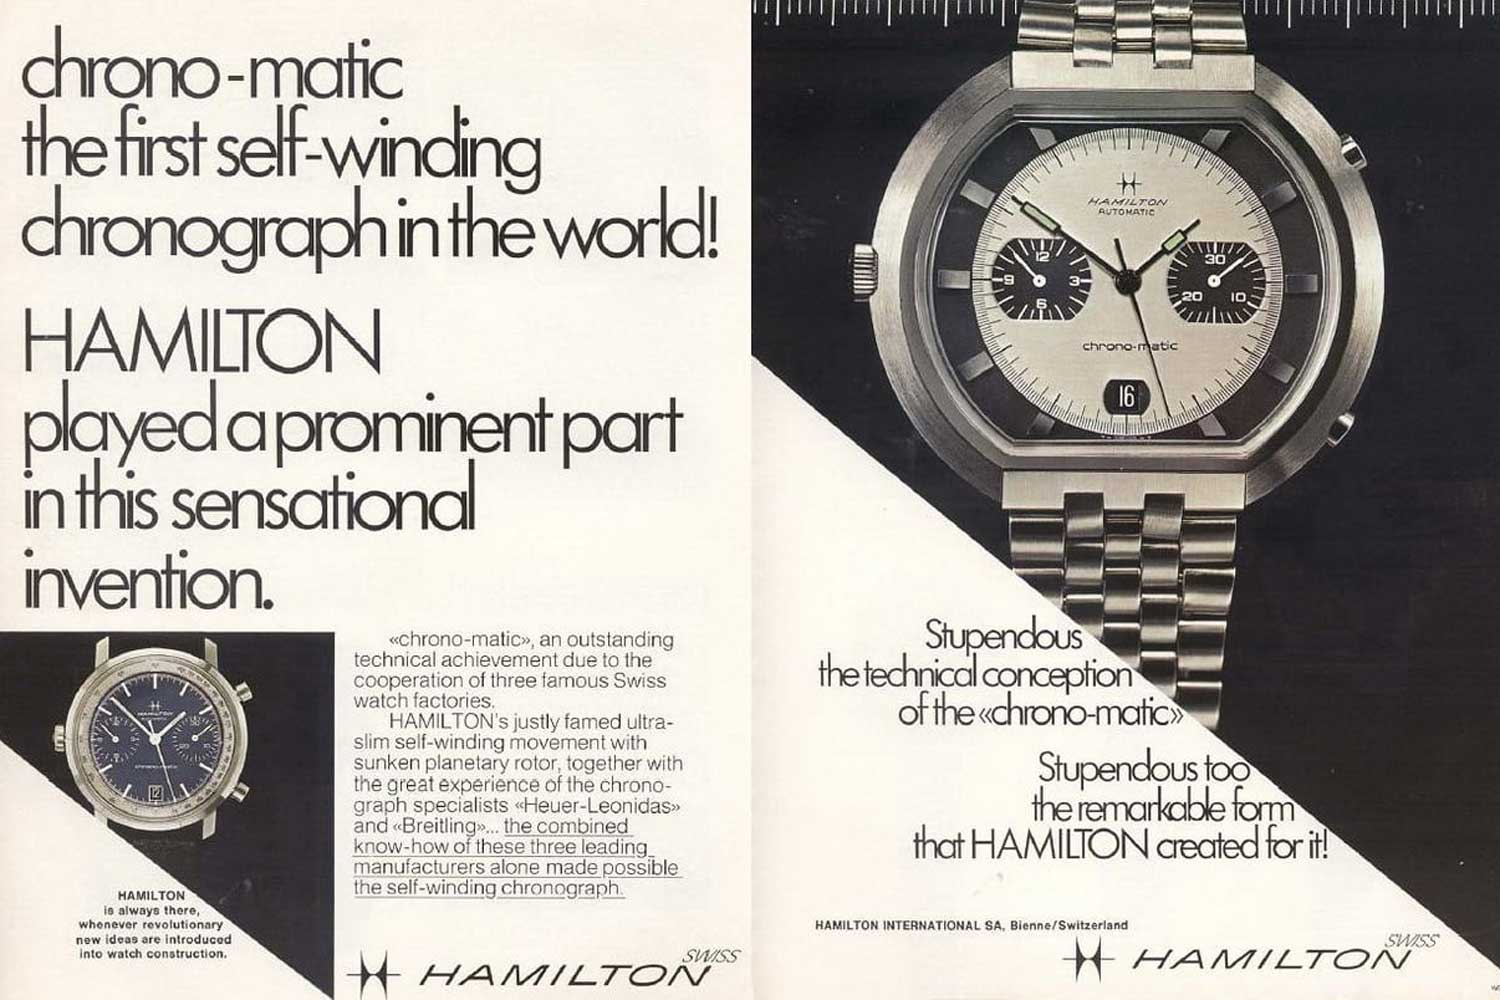 Hamilton's advertisement for the early Chronomatics in 1969